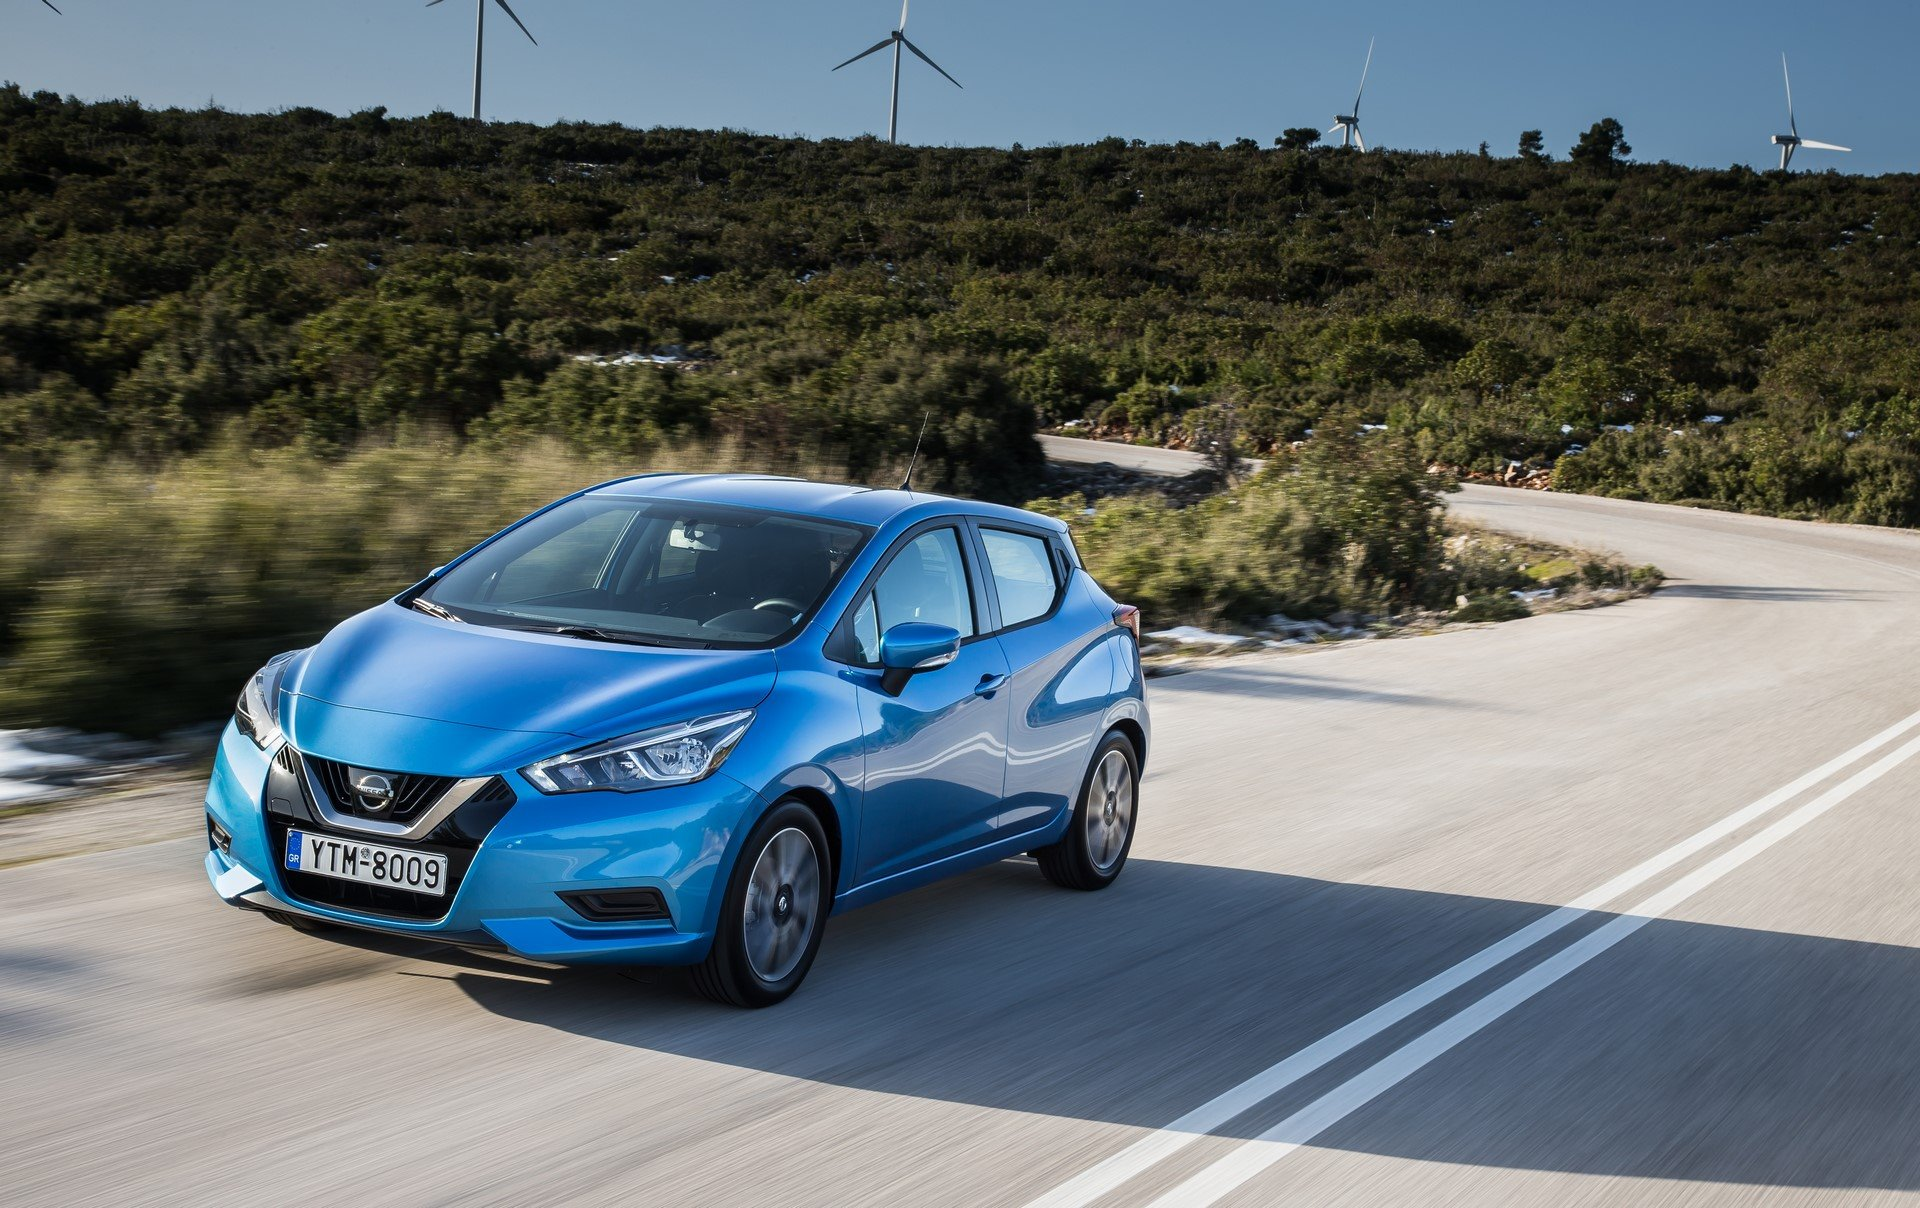 Nissan Micra 2019 Greek (73)